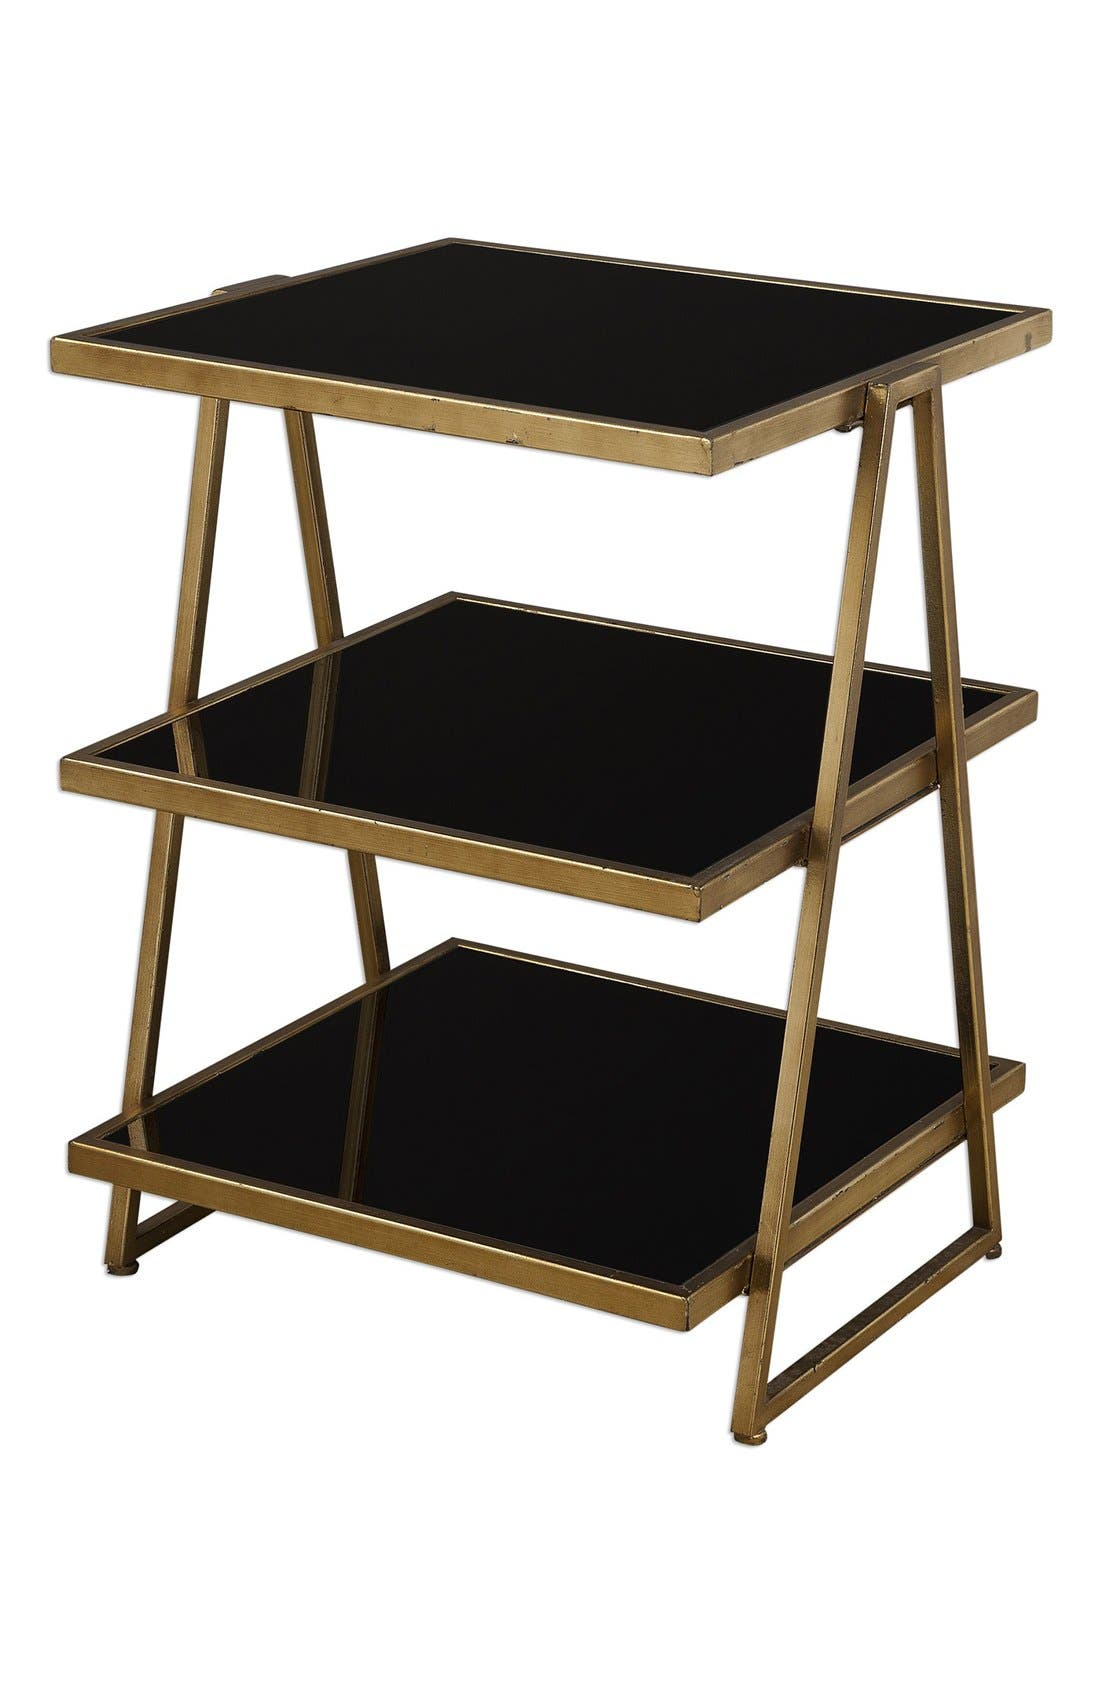 Alternate Image 1 Selected - Uttermost 'Garrity' Accent Table